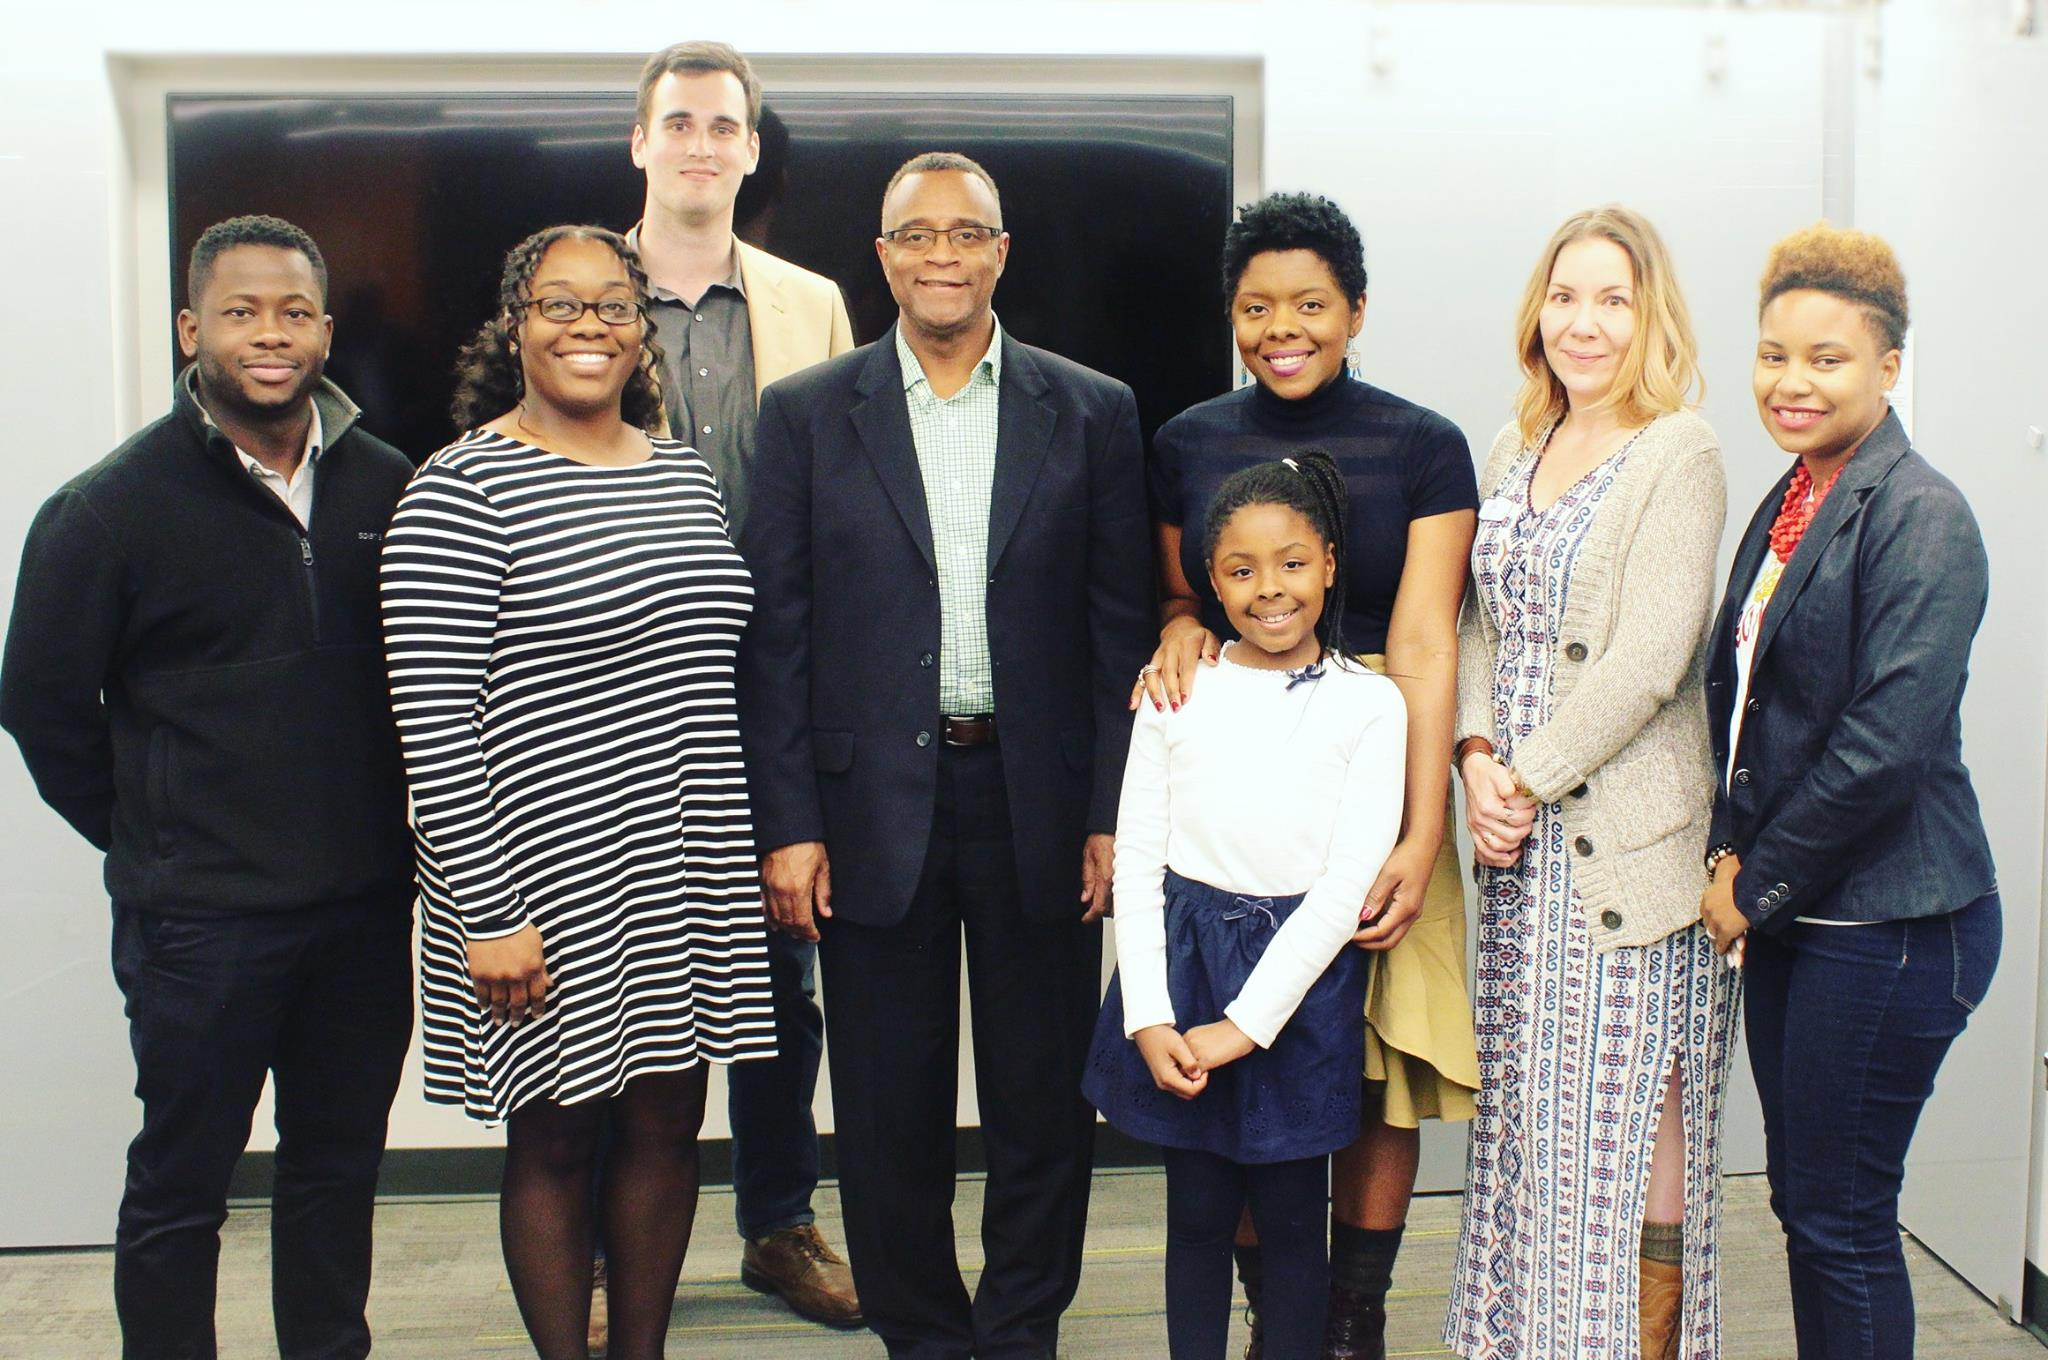 From left to right: Ademola Kassim (judge); Sonia Deal, DEAL-C2; Wyatt Gutierrez (judge); Stanley Franklin, Franklin Staffing Solutions; Grace Griffin and daughter, Tendresse and Sage; Alicia Lohmar, Ladybits Toiletries; Devon Graham (judge).